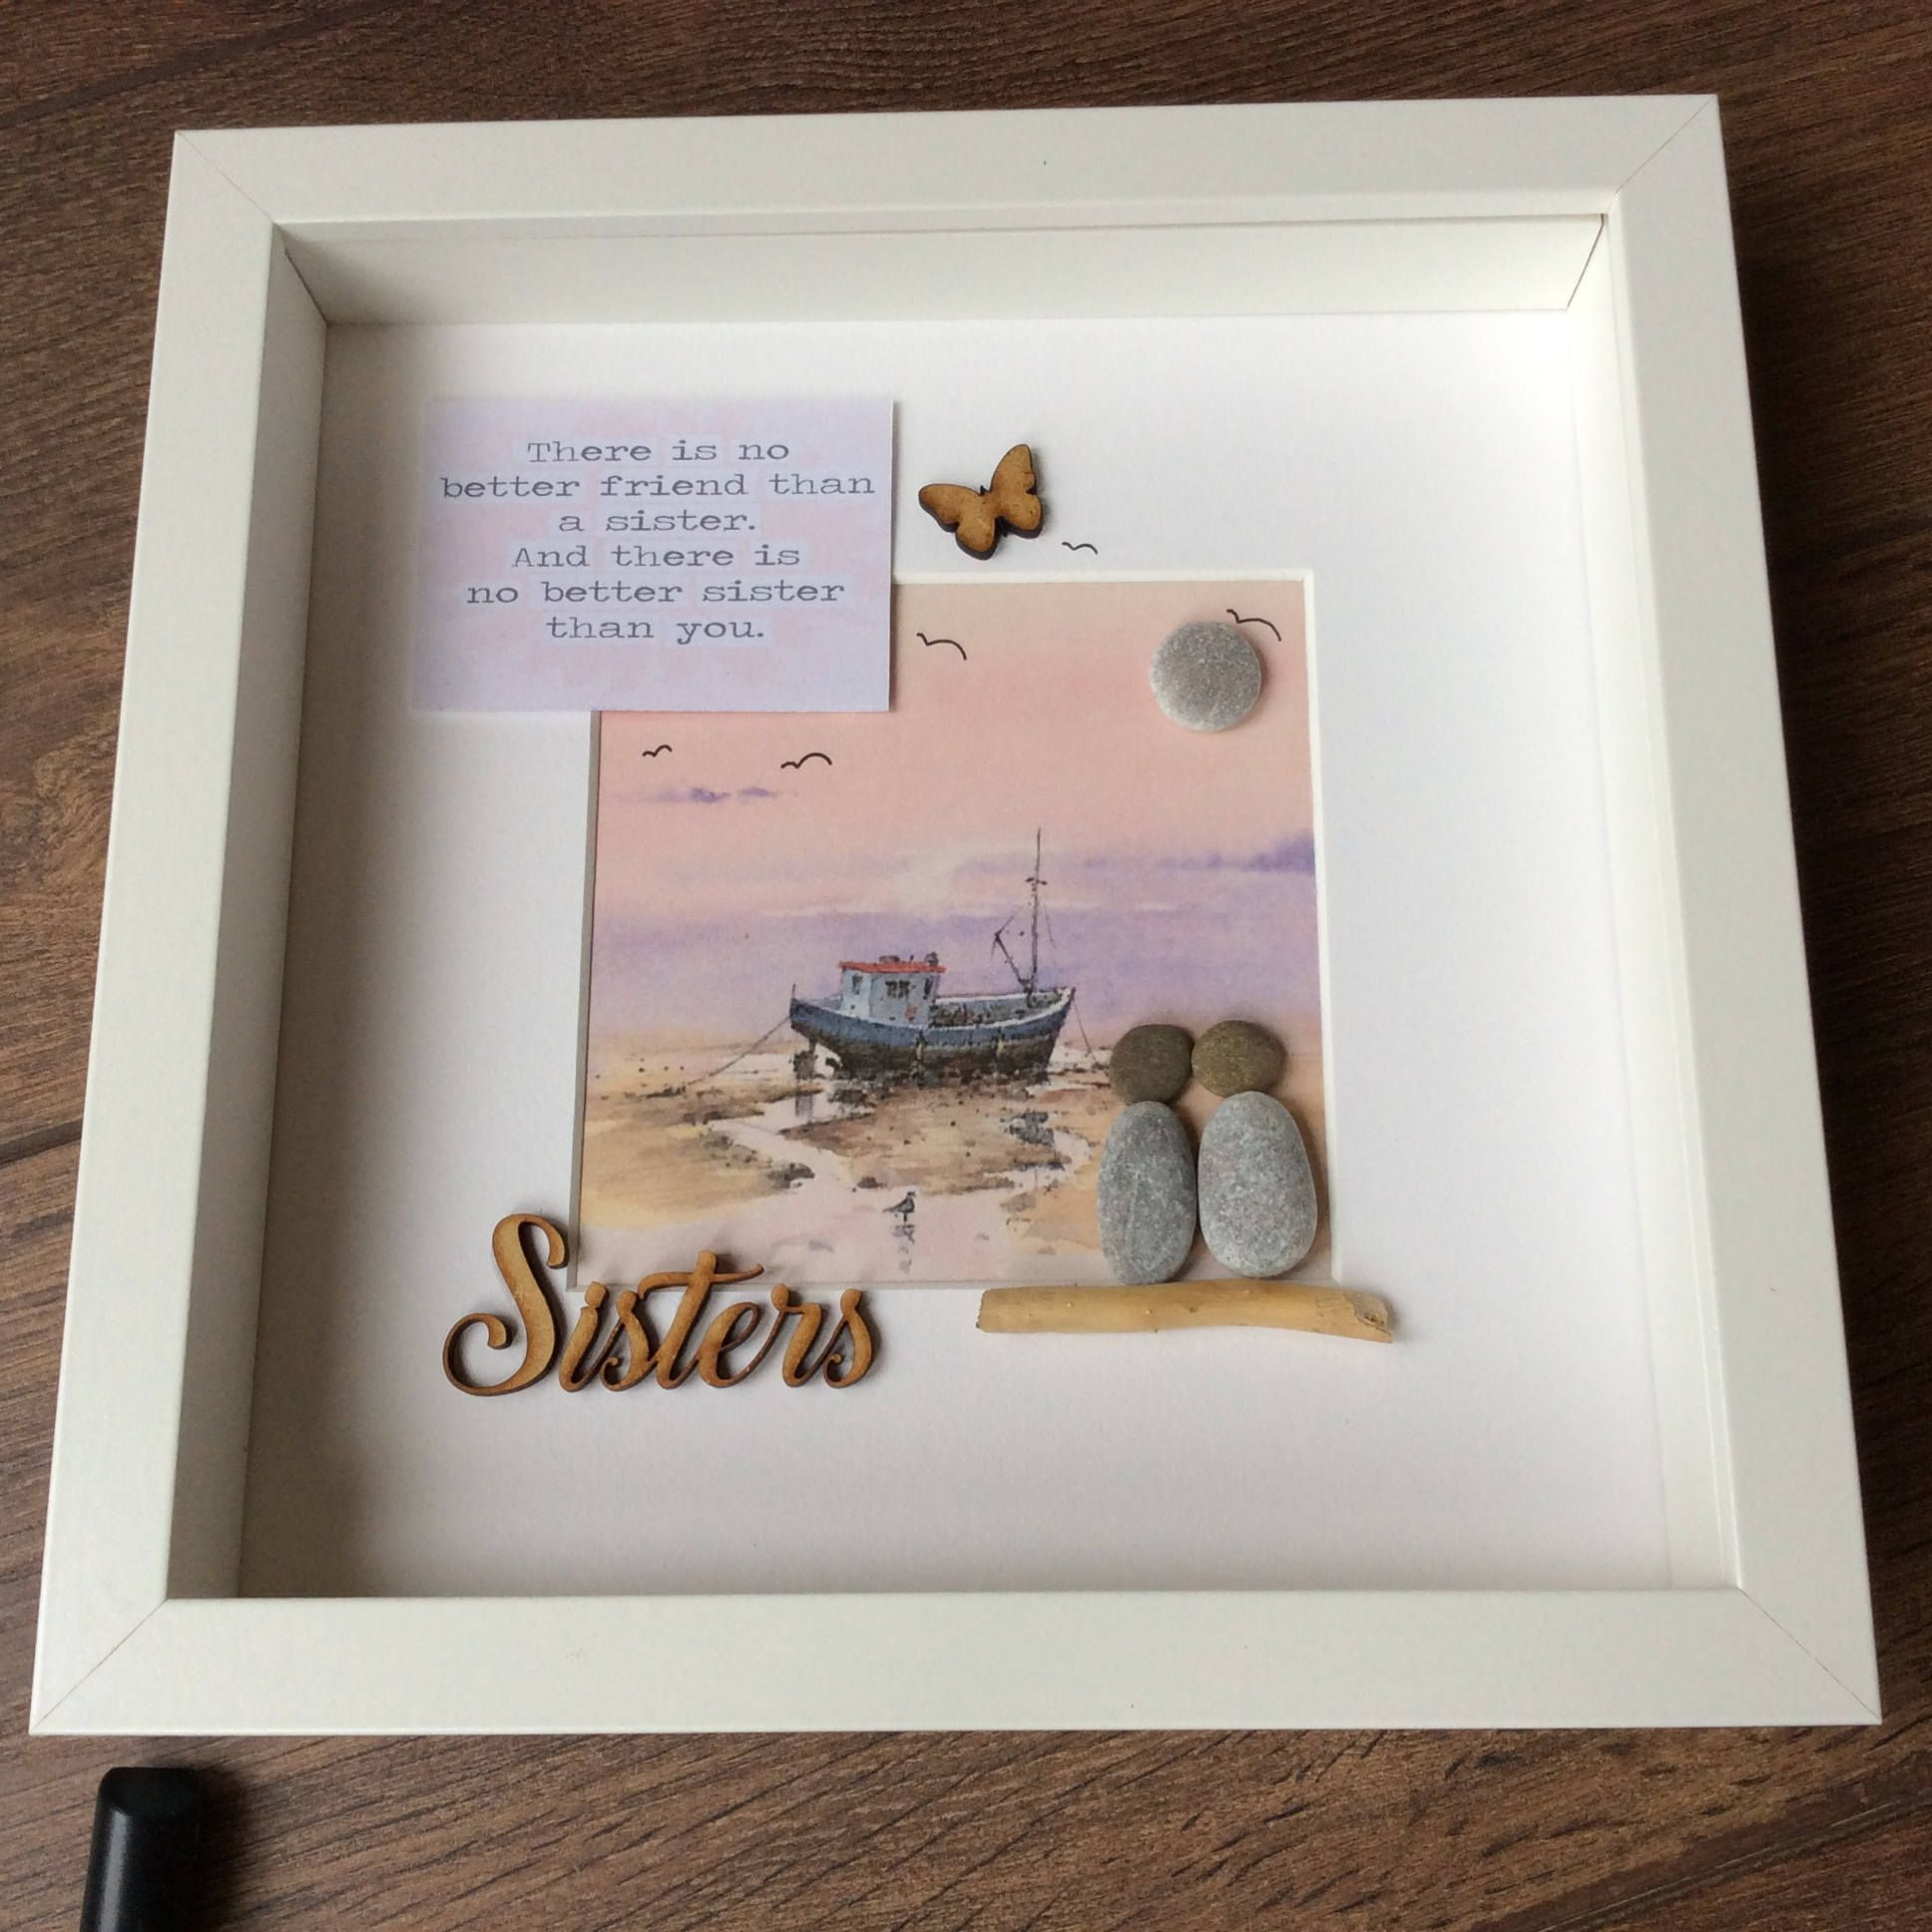 Pebble art sisters gift for her gift for sister wall art wall pebble art sisters gift for her gift for sister wall art wall decor christmas gift birthday gift sister gift best friend gift wall negle Gallery